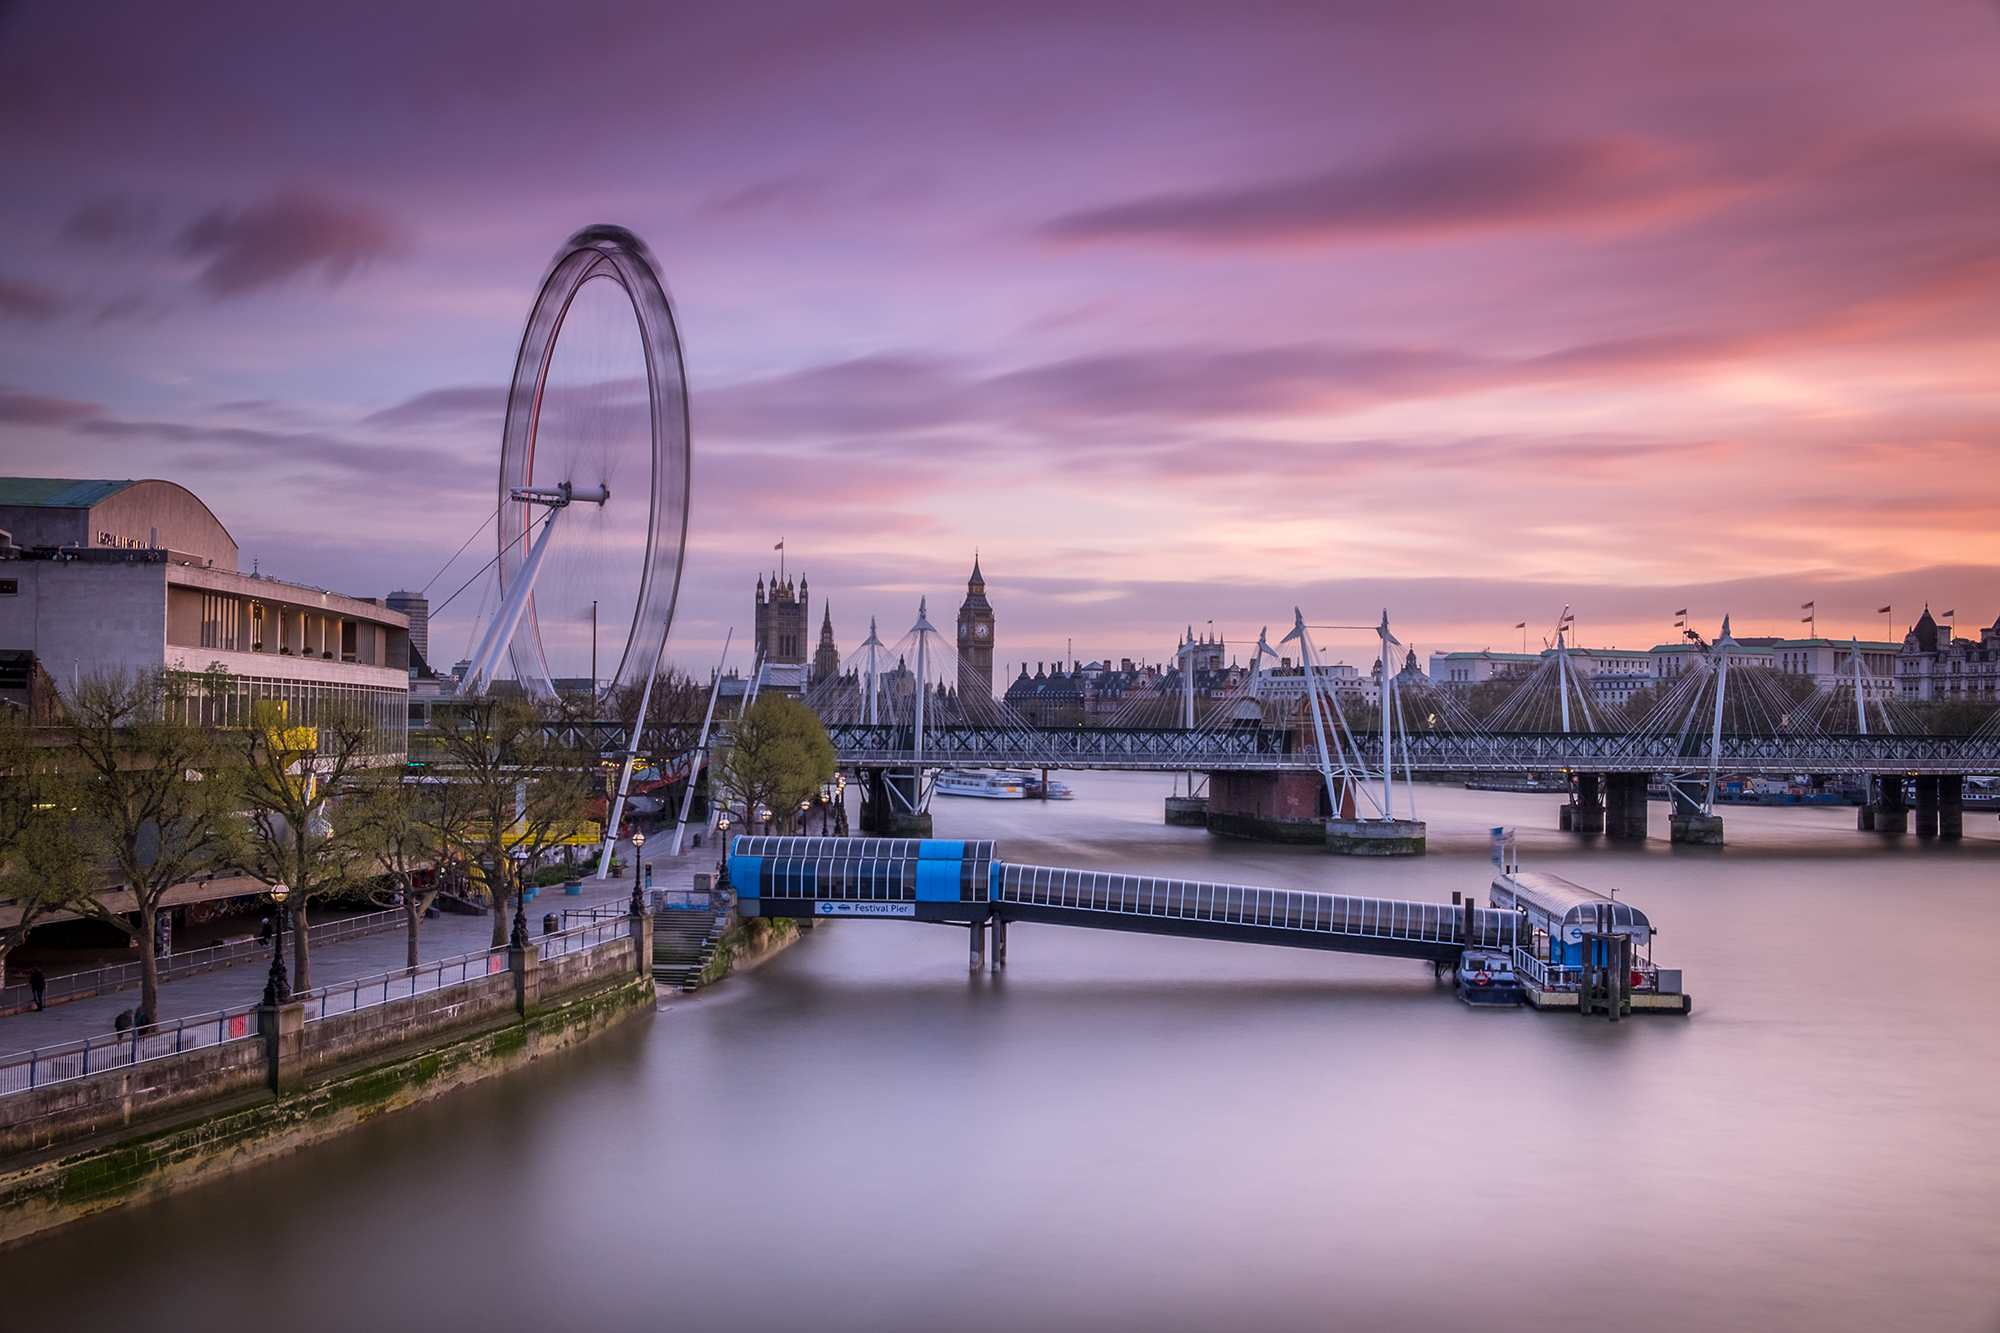 Long exposure photo of Westminster at Sunset taken from Waterloo Bridge, London Fujifilm X-T10 | XF18-55mm | 23mm | 58 seconds | f/11 | ISO200